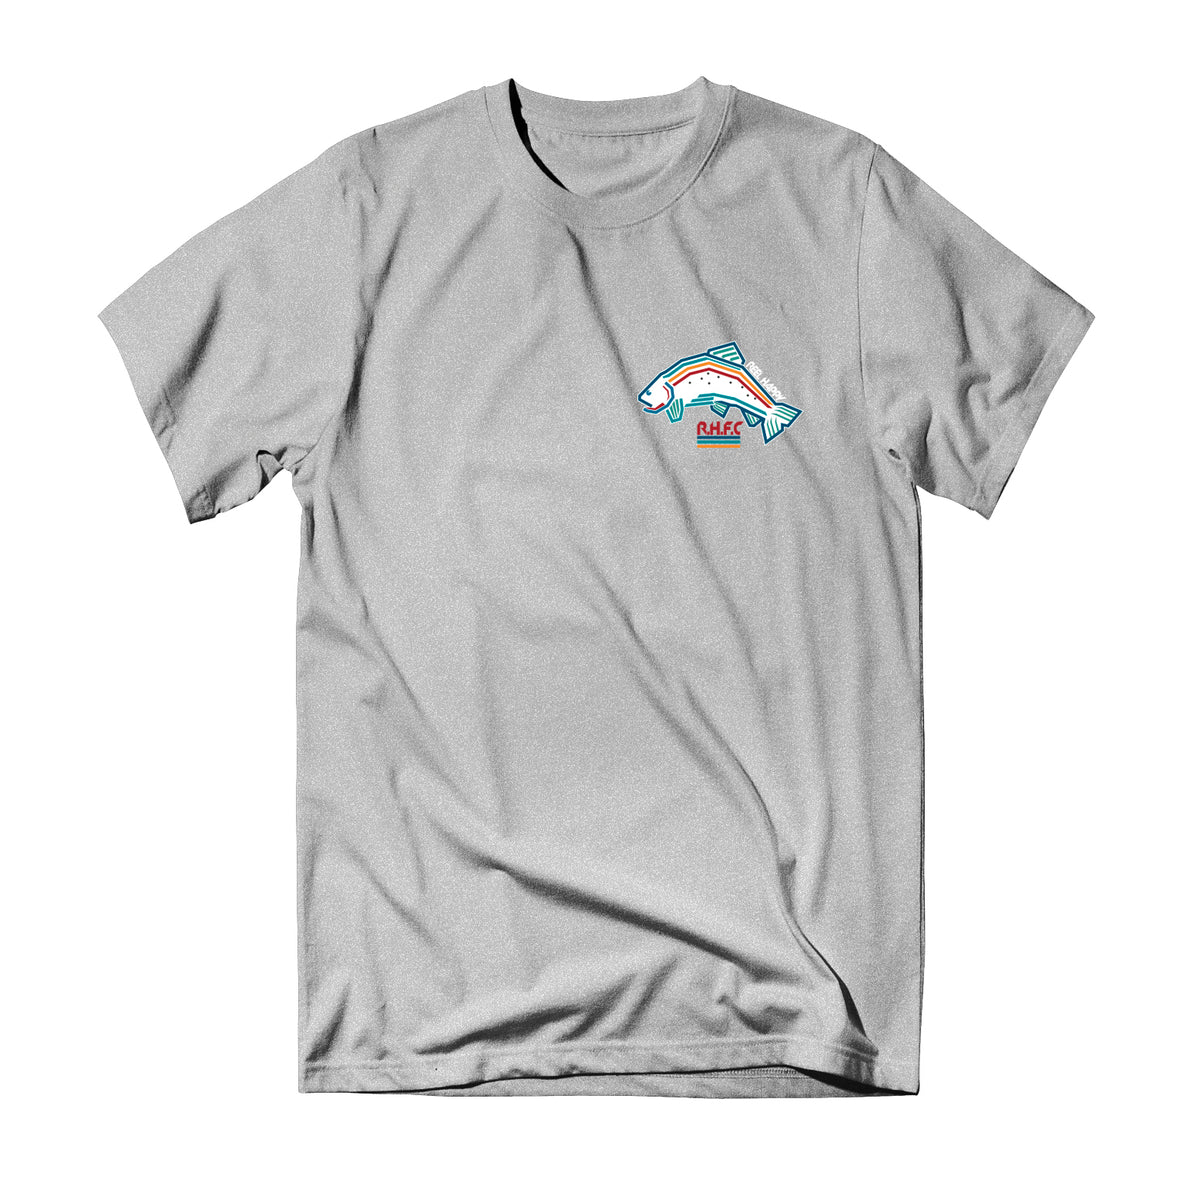 Trout Lines T-Shirt - Heather Grey - Reel Happy Co